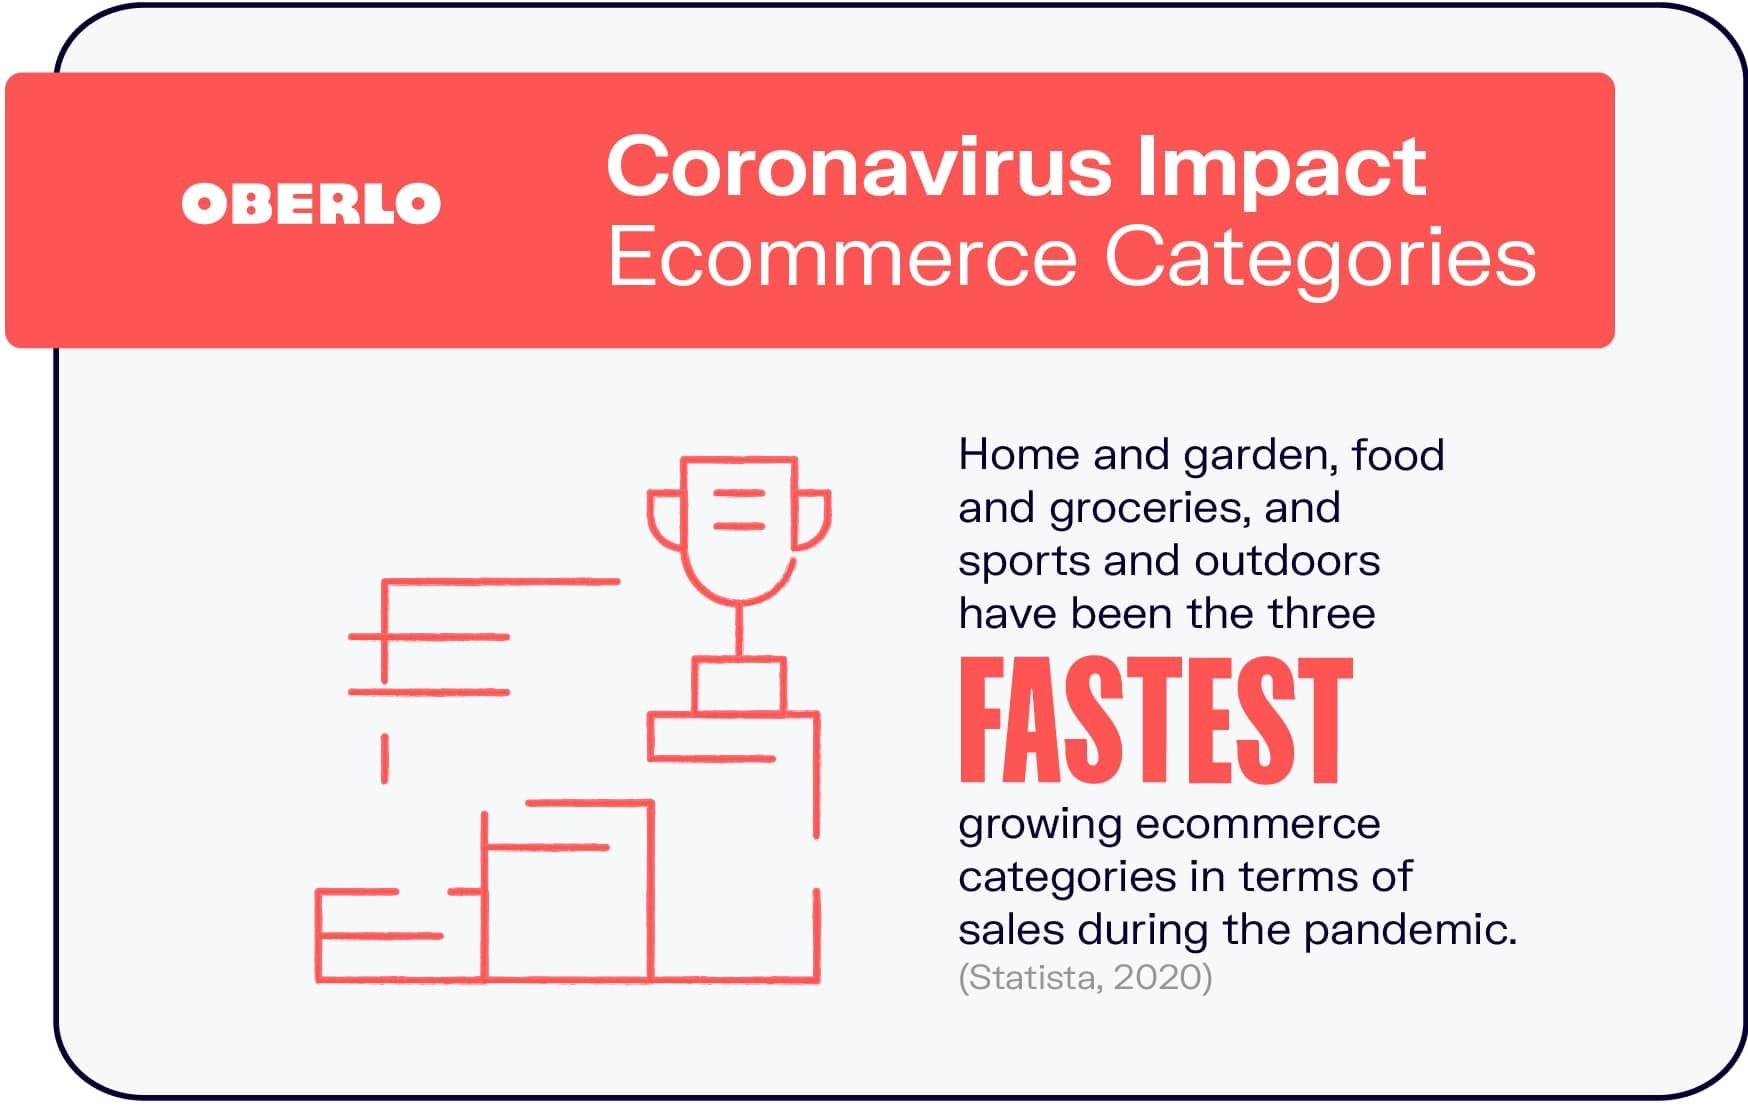 Coronavirus Impact on Ecommerce Categories